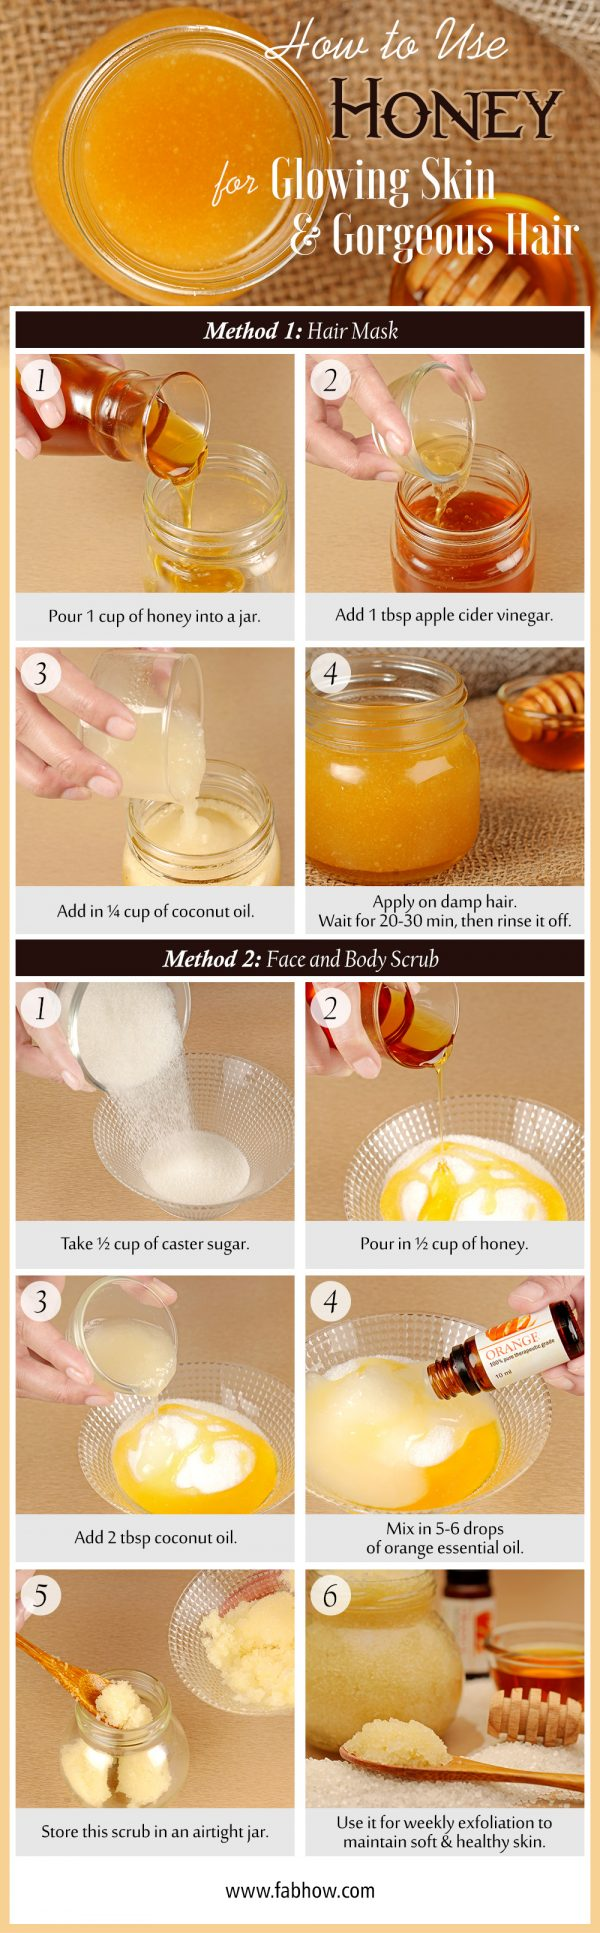 how to use honey for skin and hair summary